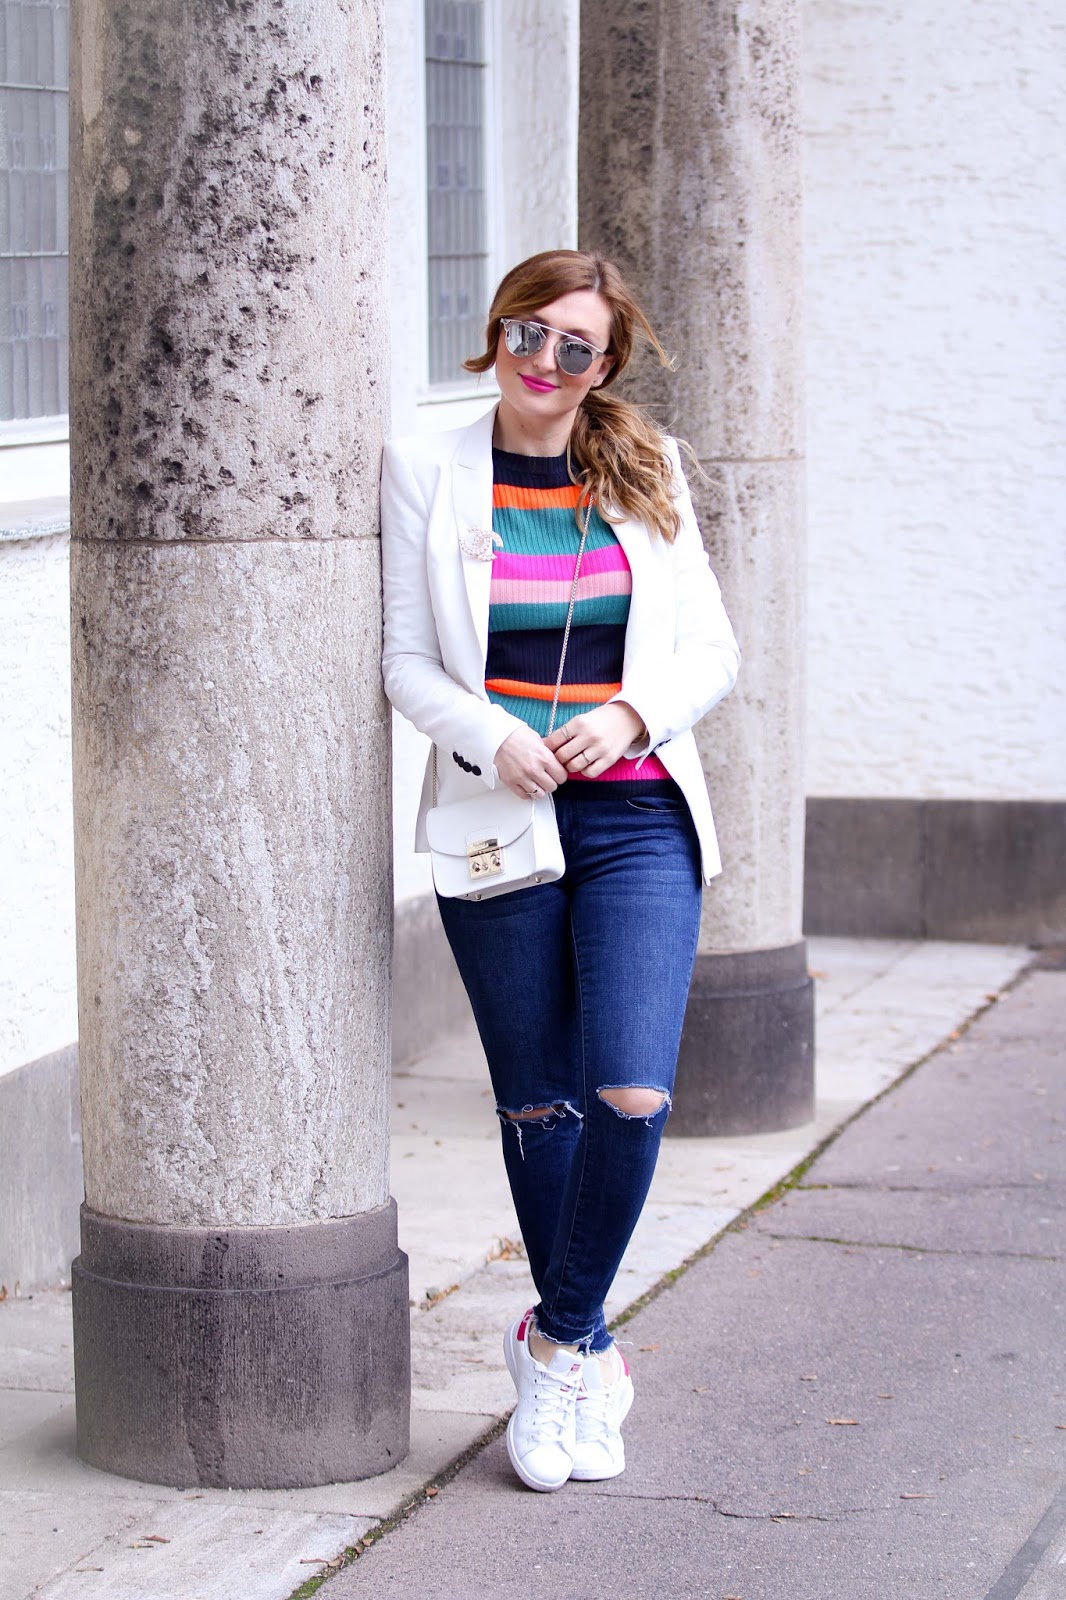 Noisymay-Fashionblogger-Blogger-aus-Deutschland-deutsche-fashionblogger-fashionstylebyjohanna